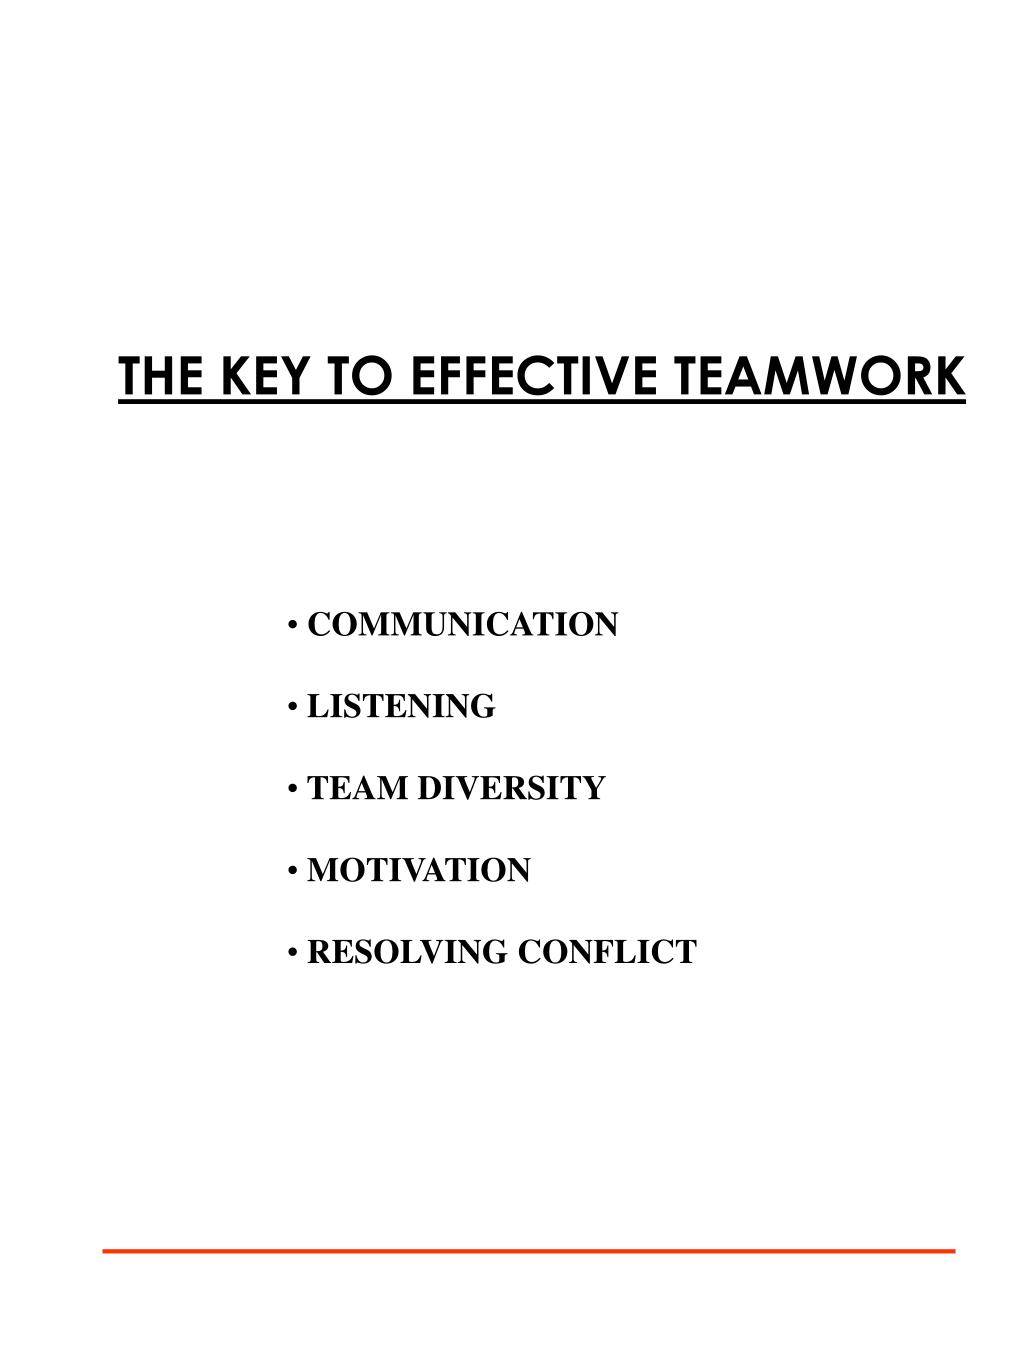 THE KEY TO EFFECTIVE TEAMWORK